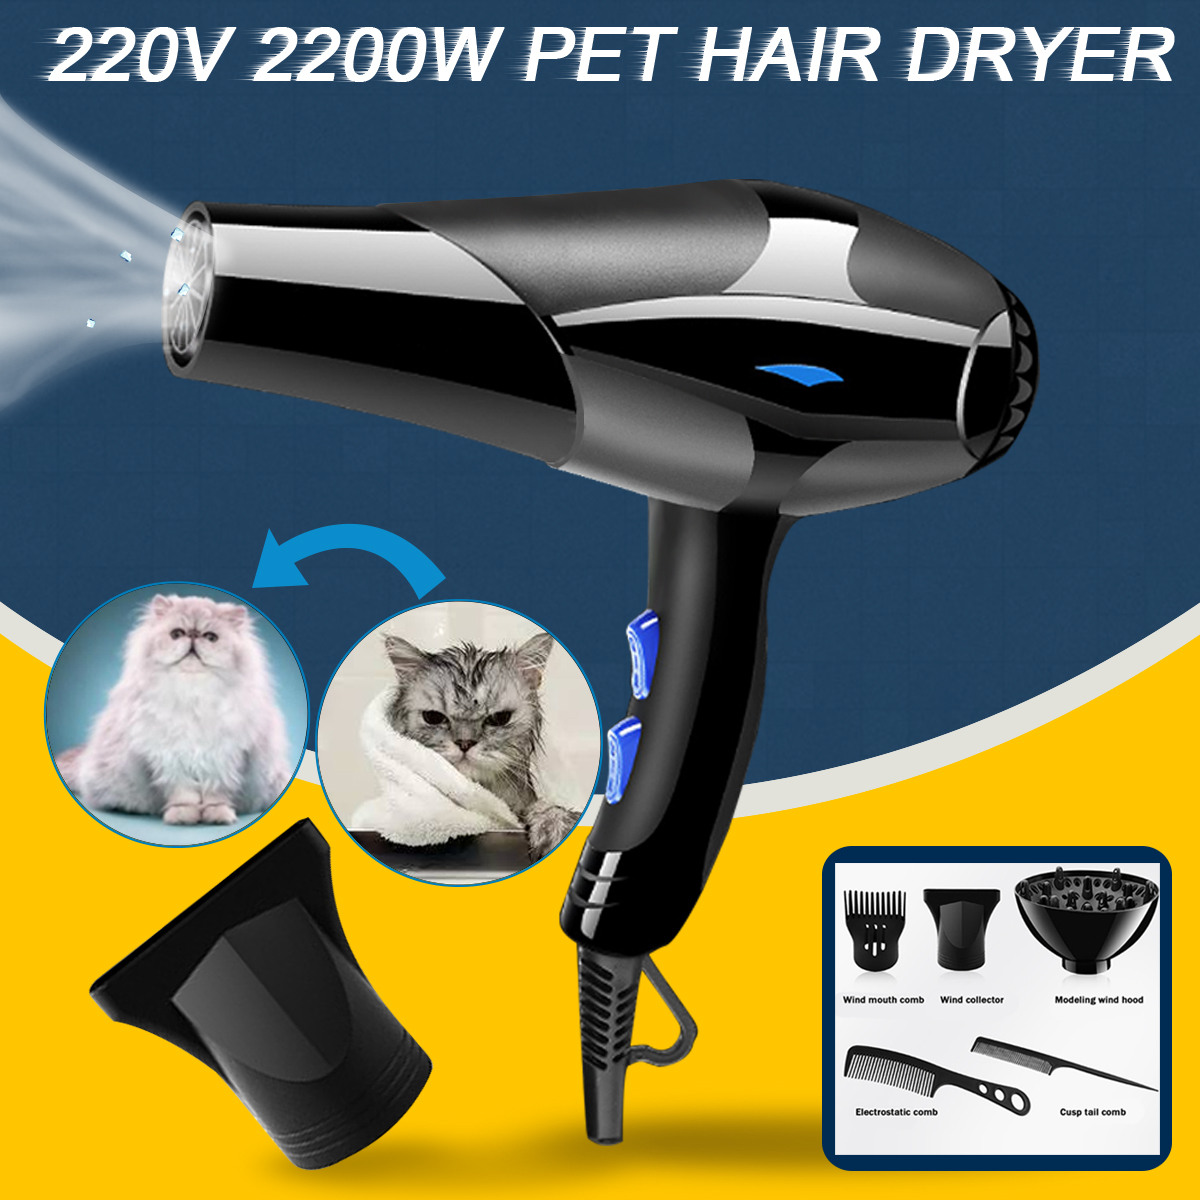 220V 2200W Electric Hair Dryer Blow Dryer Infrared Ionic Salon Use For Bathroom Living Room